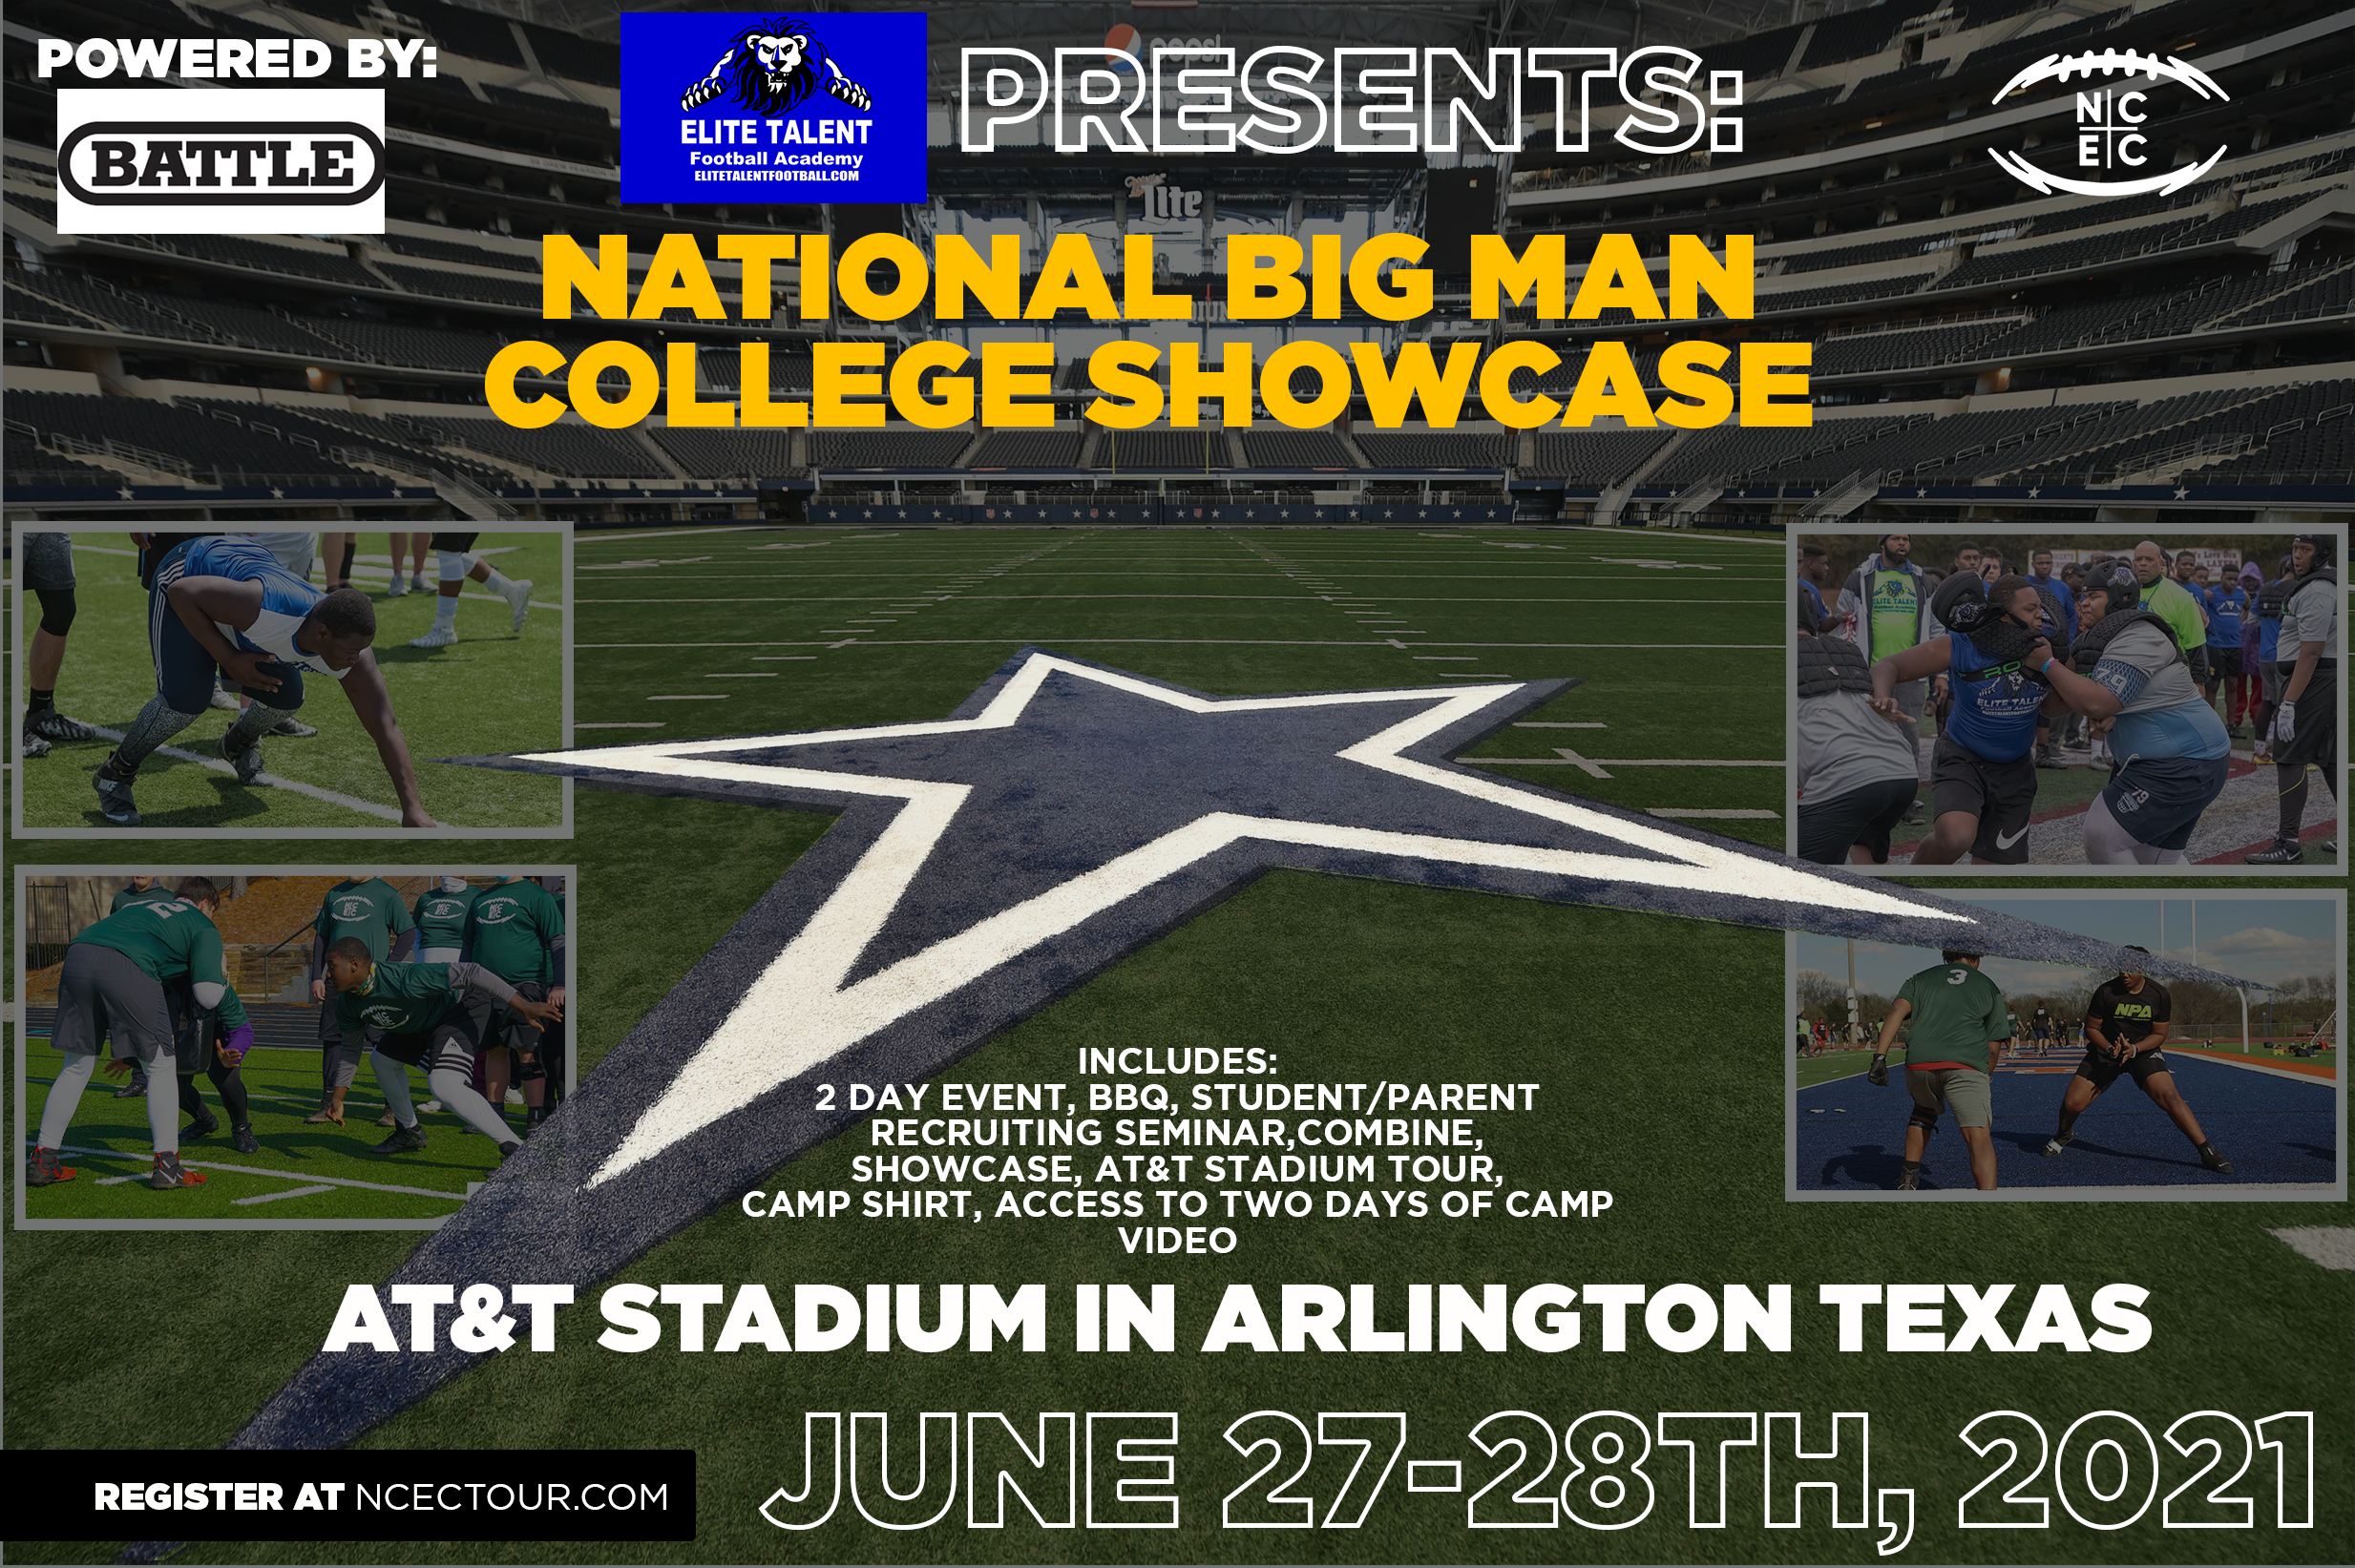 The National 'Big Man Camp' at Dallas Cowboys Stadium Powered by Battle welcomes the Next Generation of Football Stars